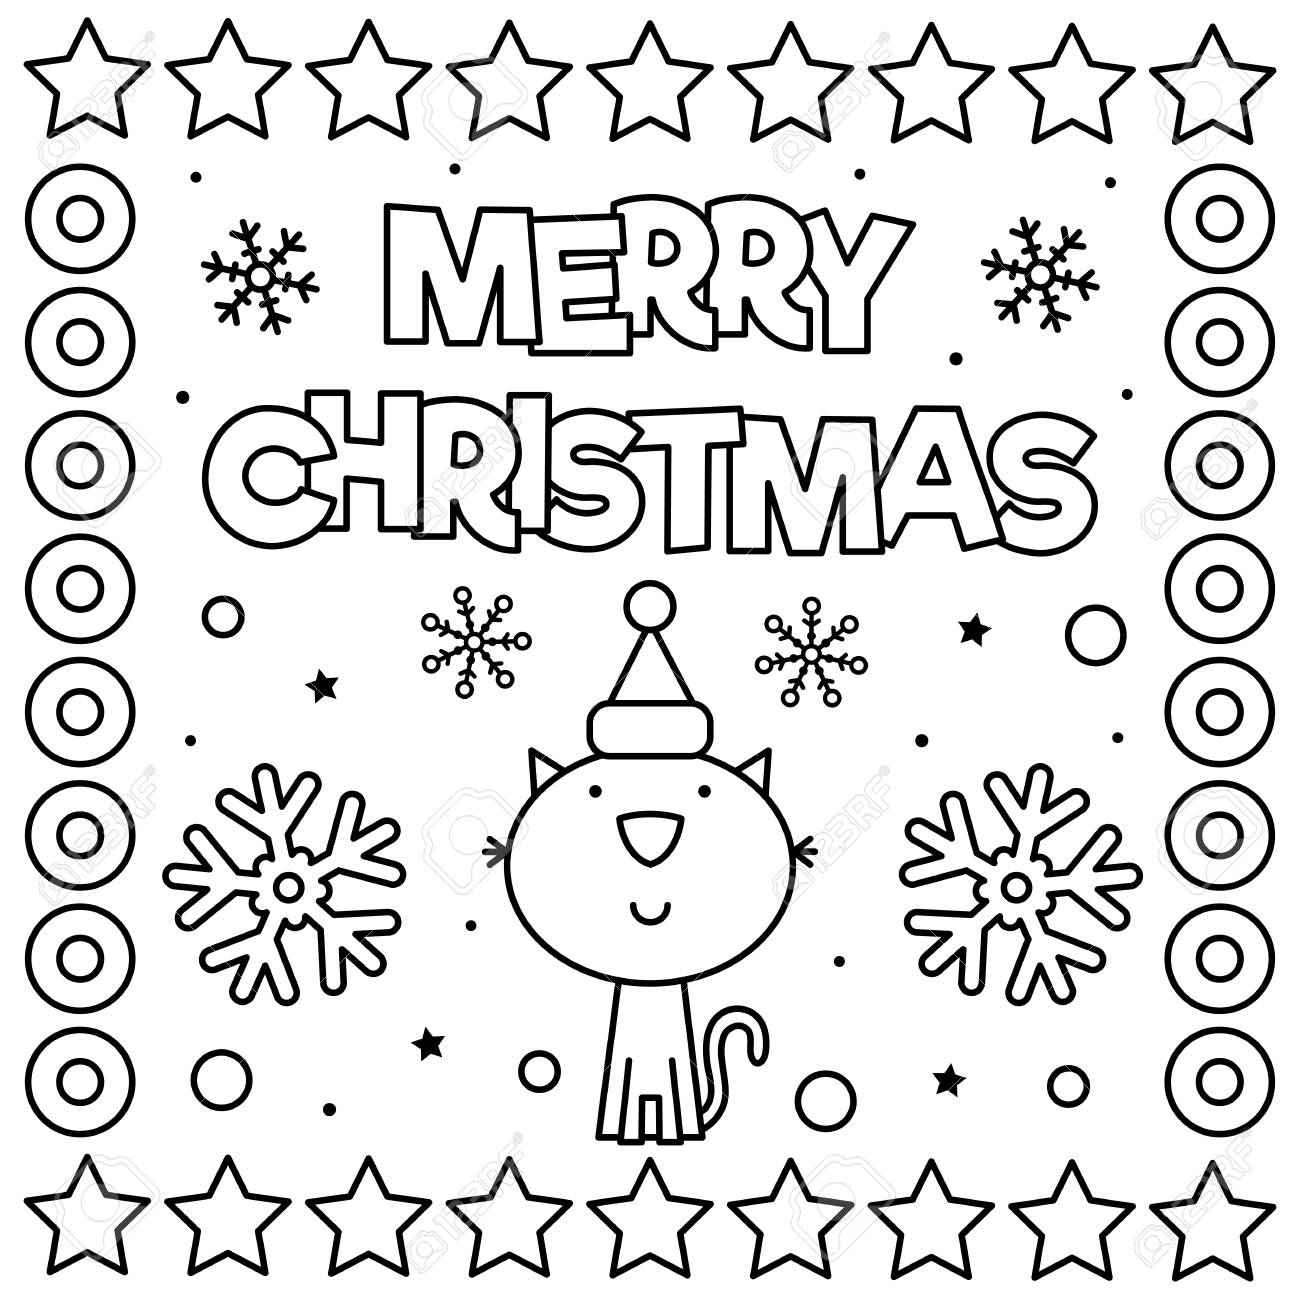 Merry Christmas Coloring Page Black And White Vector Illustration Royalty Free Cliparts Vectors And Stock Illustration Image 127434848